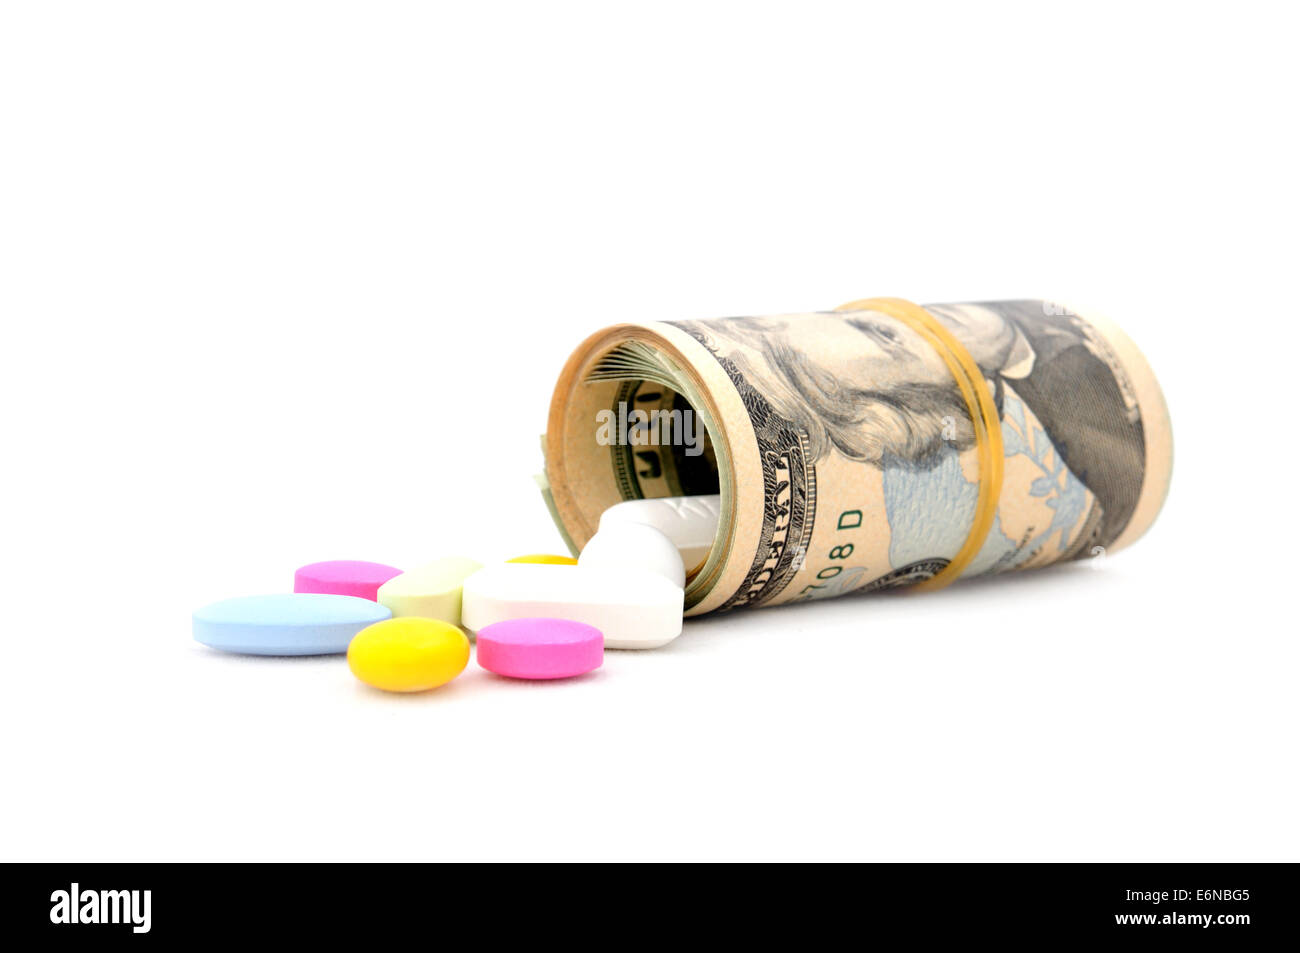 Health Expenditure High Resolution Stock Photography And Images Alamy